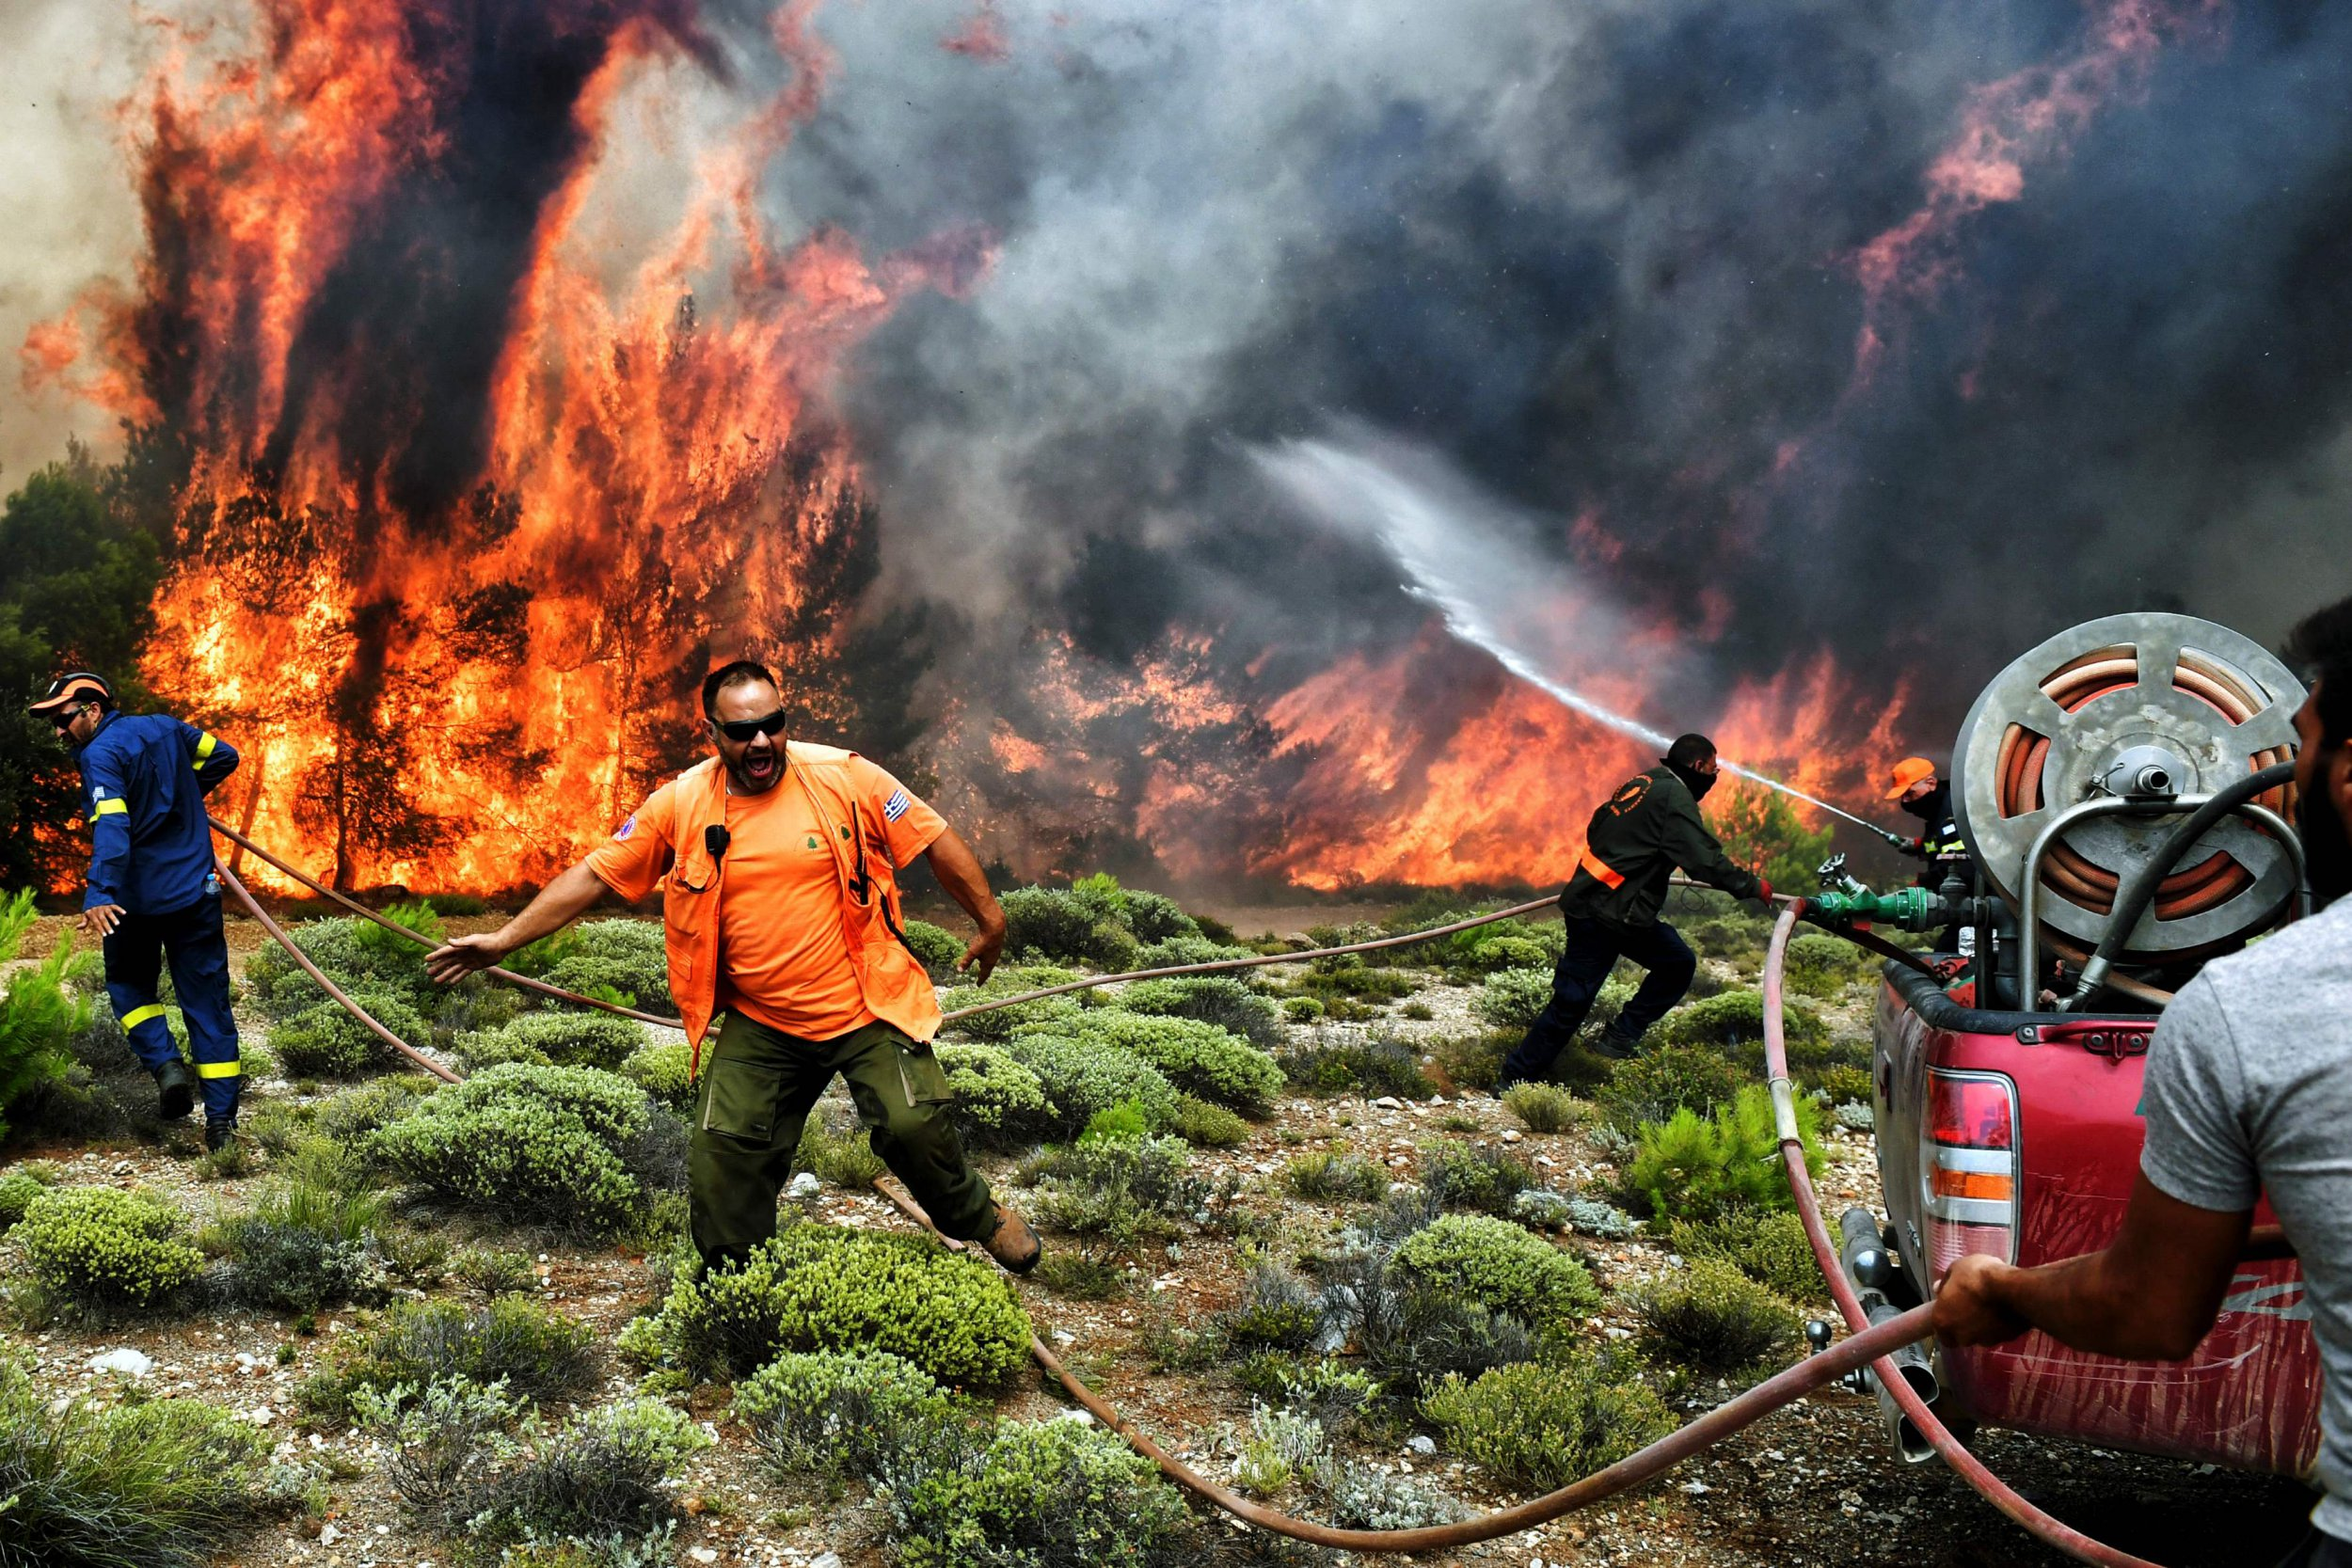 Greece wildfire that killed 82 people 'was started by arson'